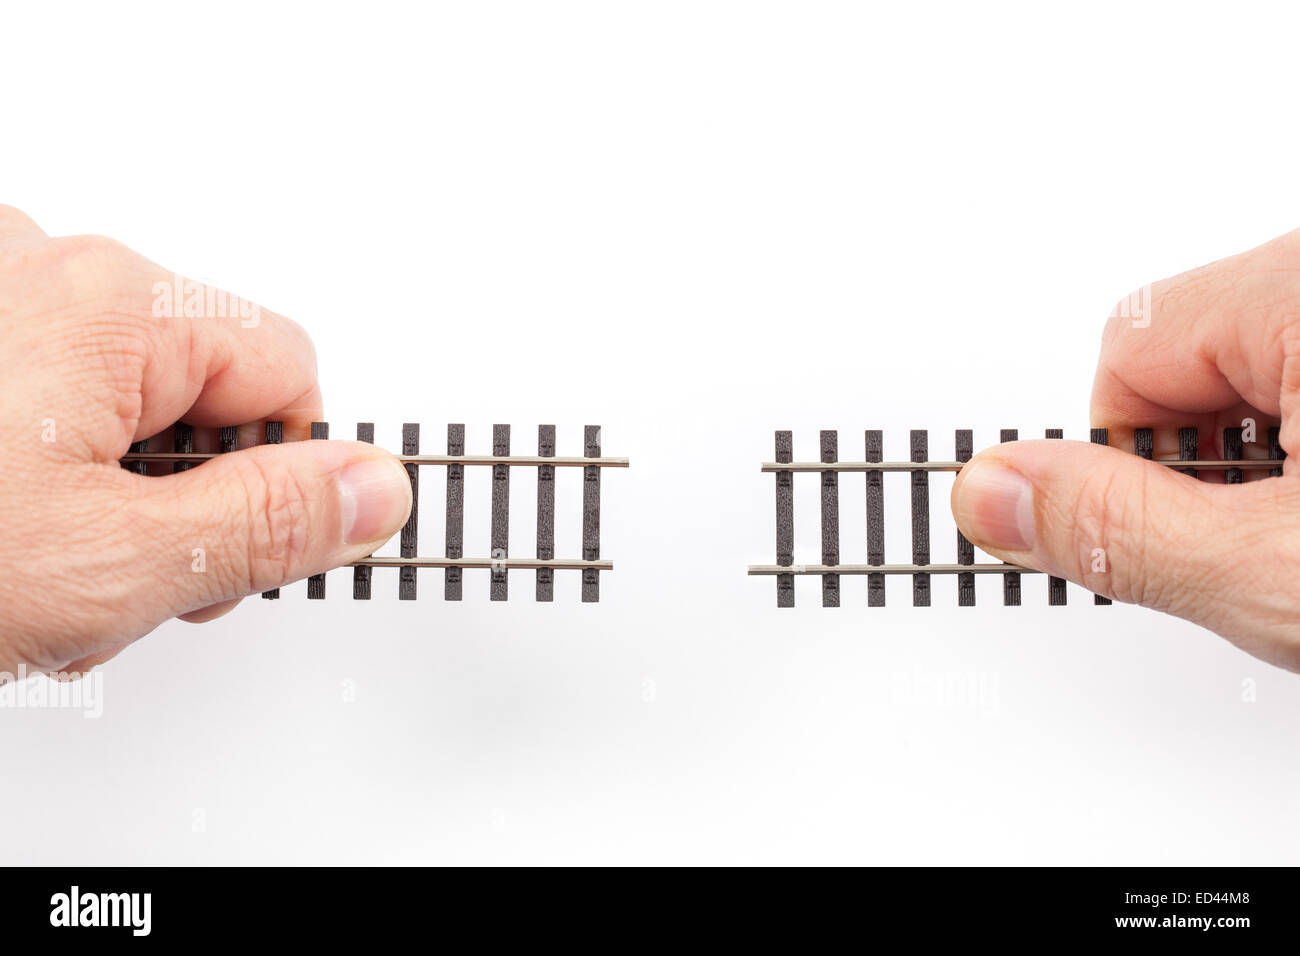 Railroad tracks toys in two hands ready for connecting isolated on white background - Stock Image